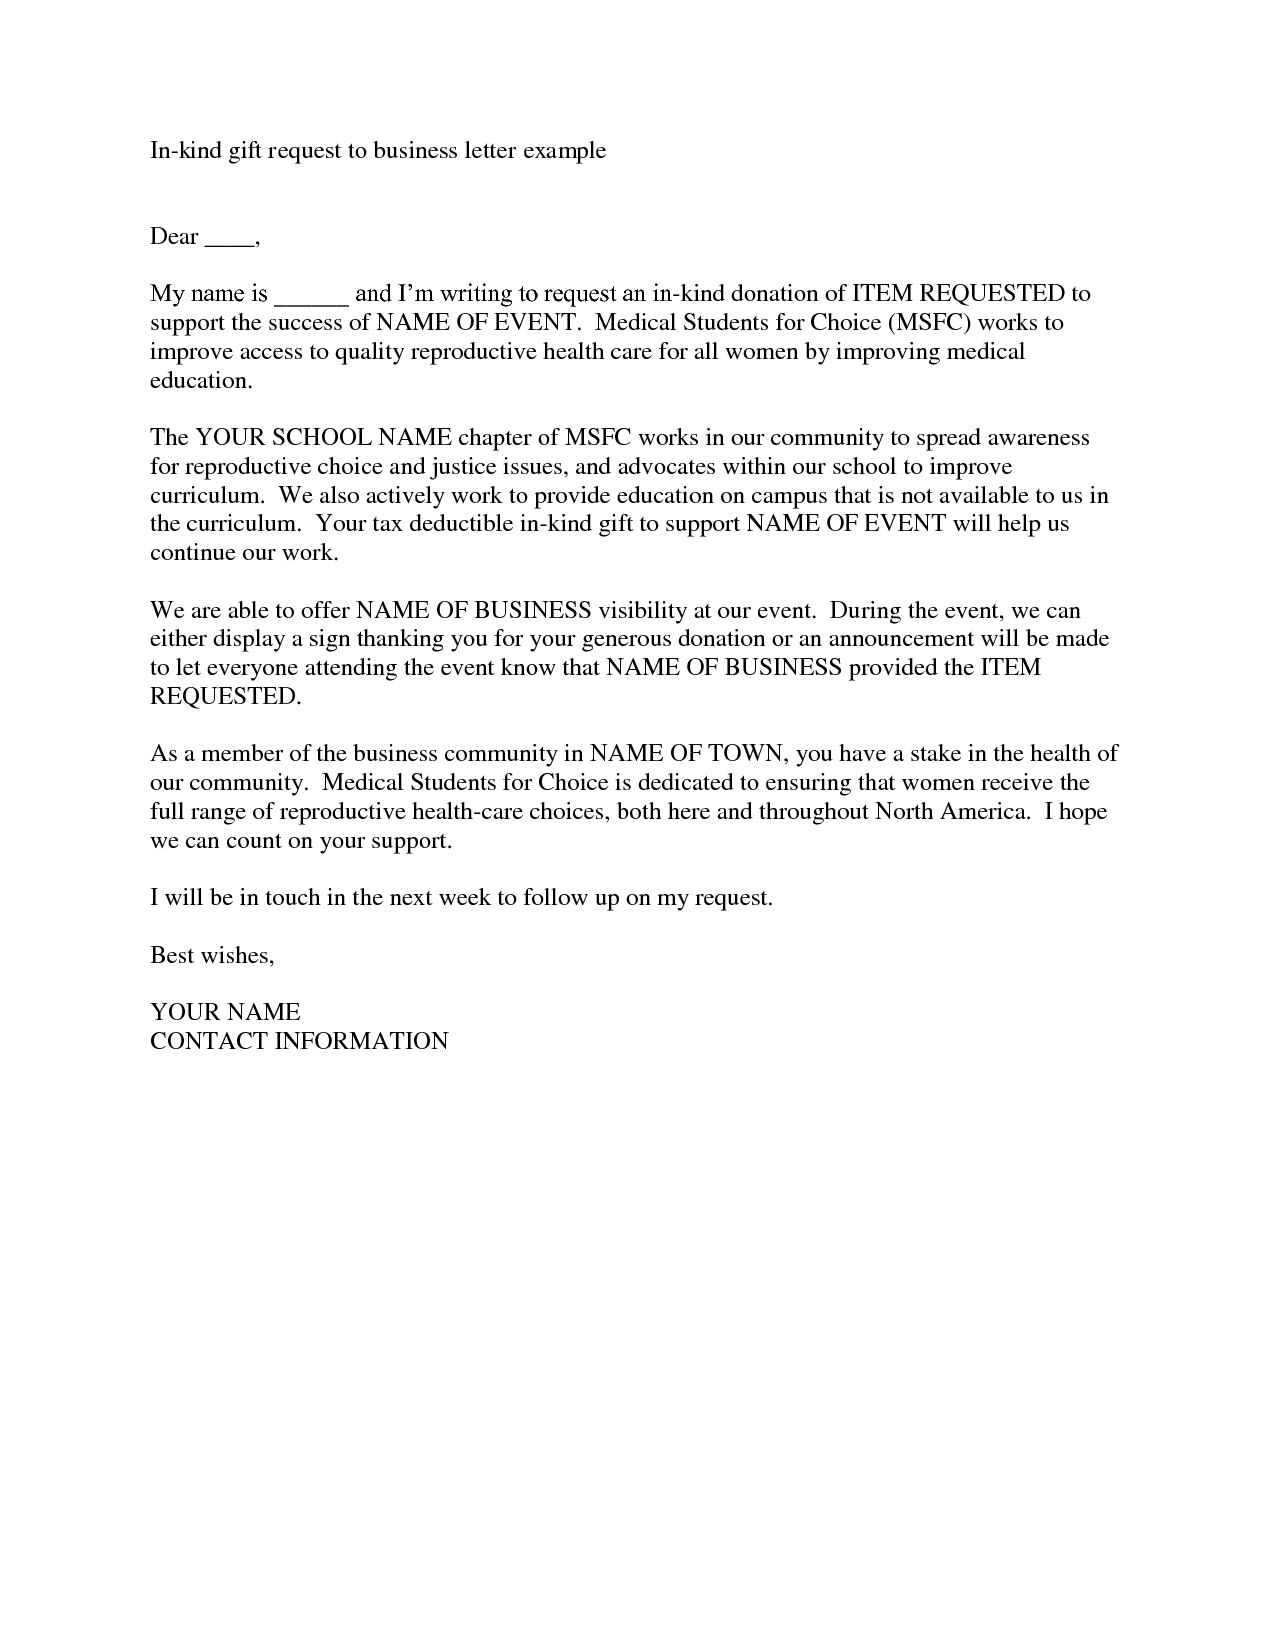 Fundraising Made Effortless With  Donation Request Letters Throughout Business Donation Letter Template